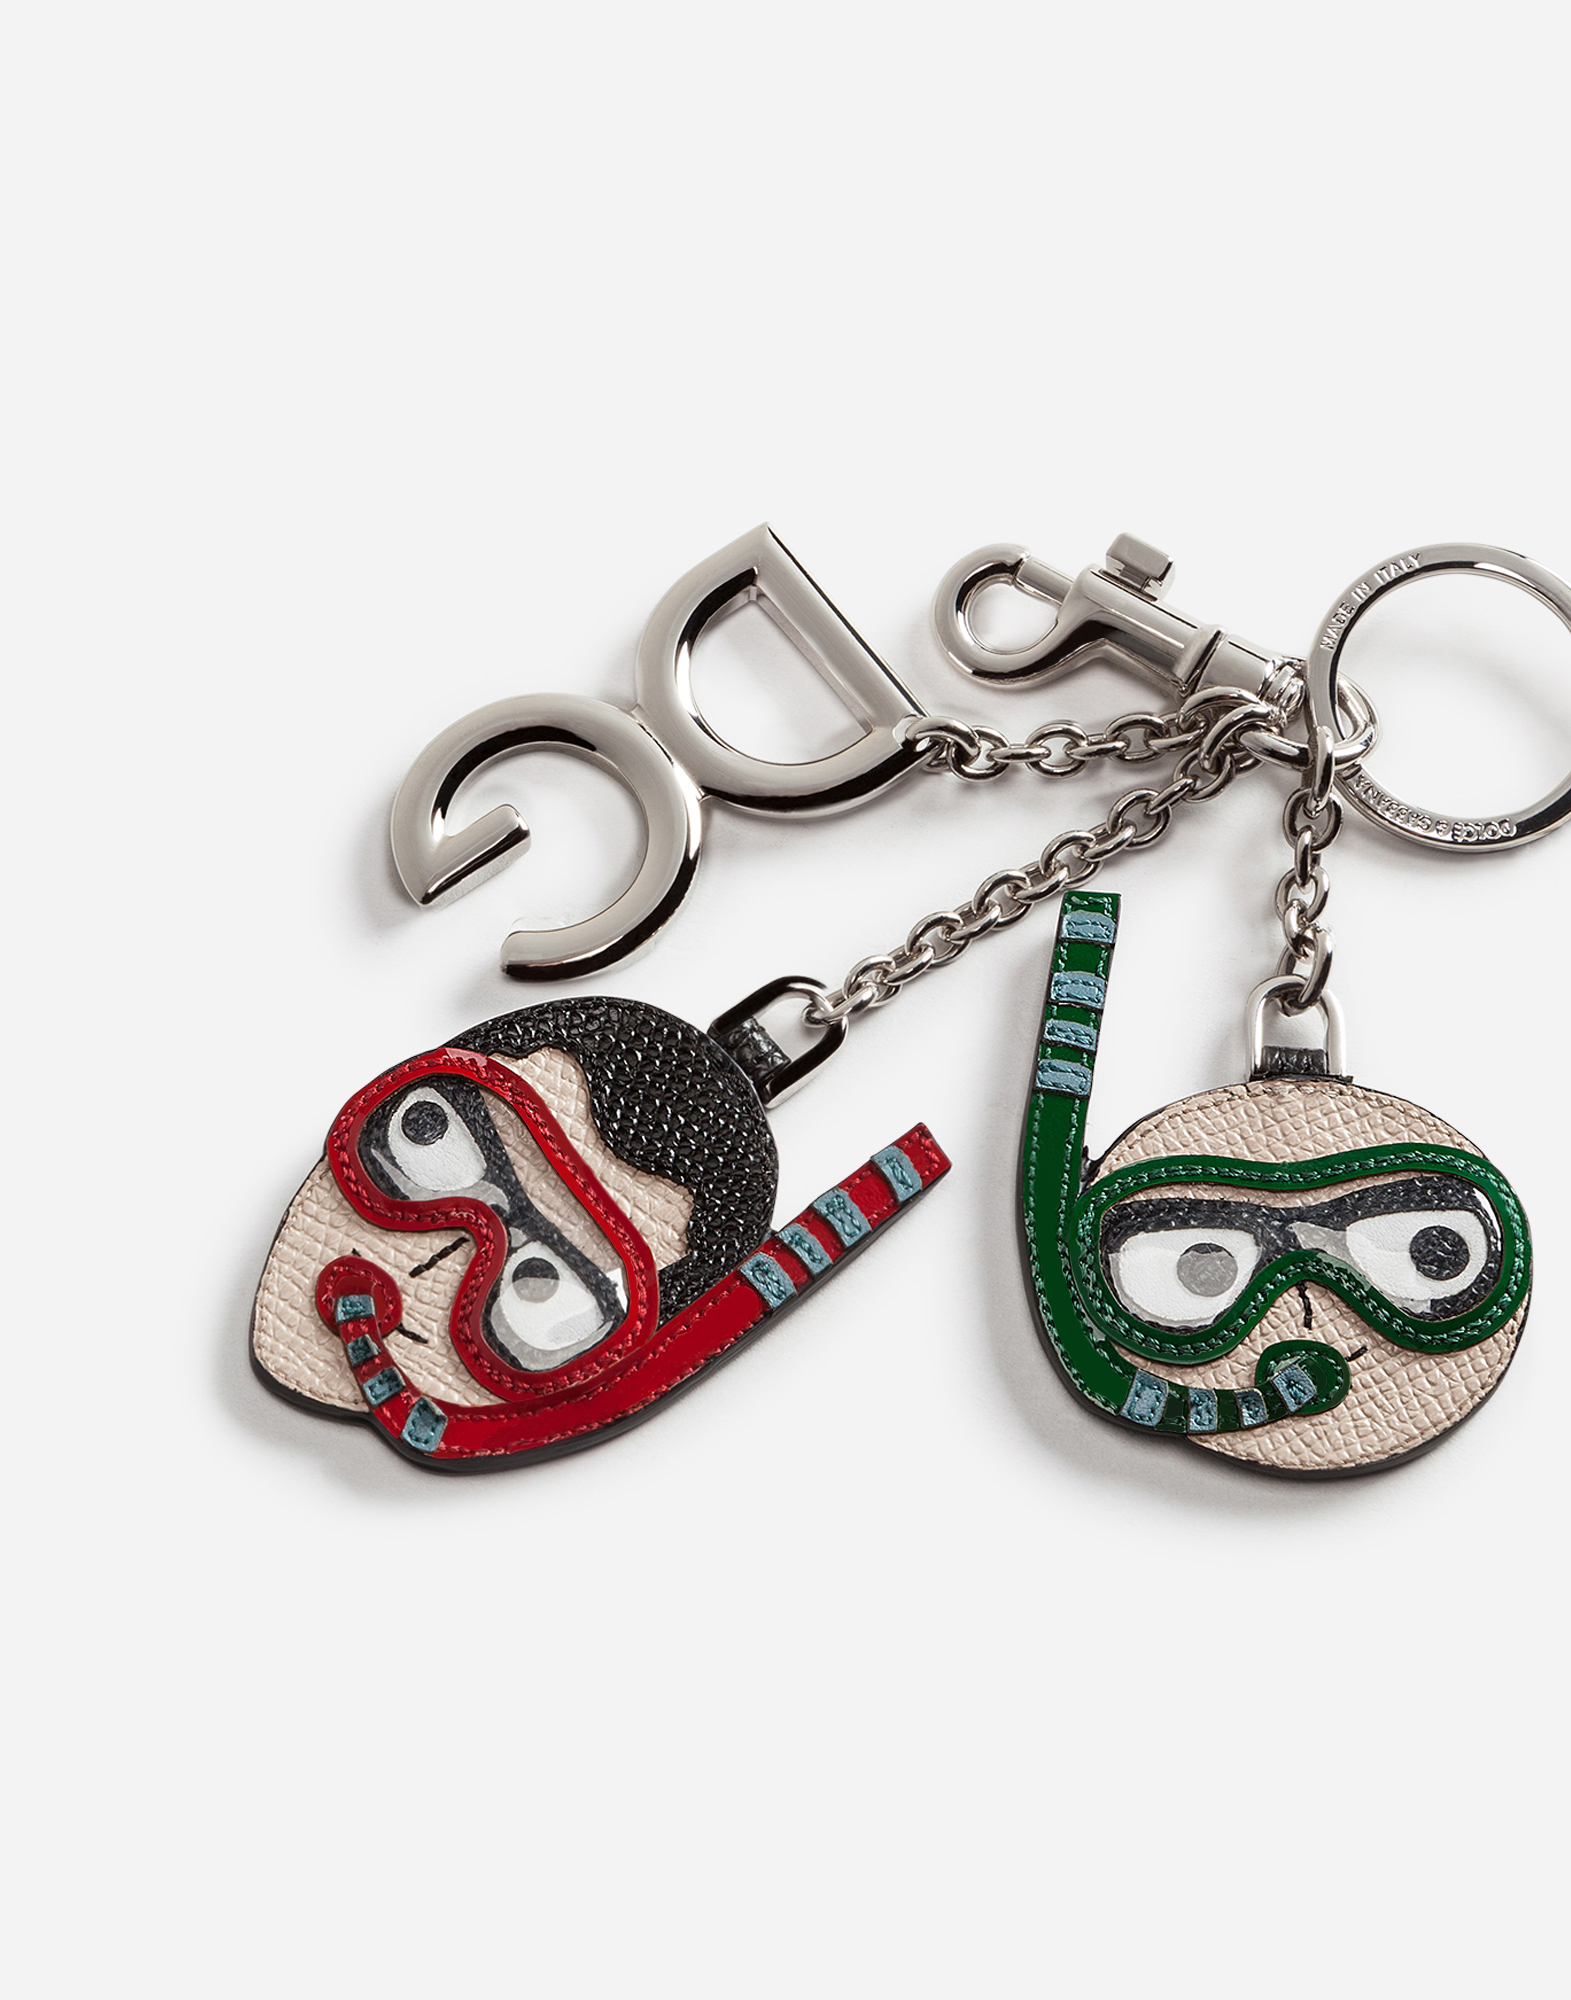 DAUPHINE CALFSKIN KEYCHAIN WITH DIVER-STYLE PATCHES OF THE DESIGNERS